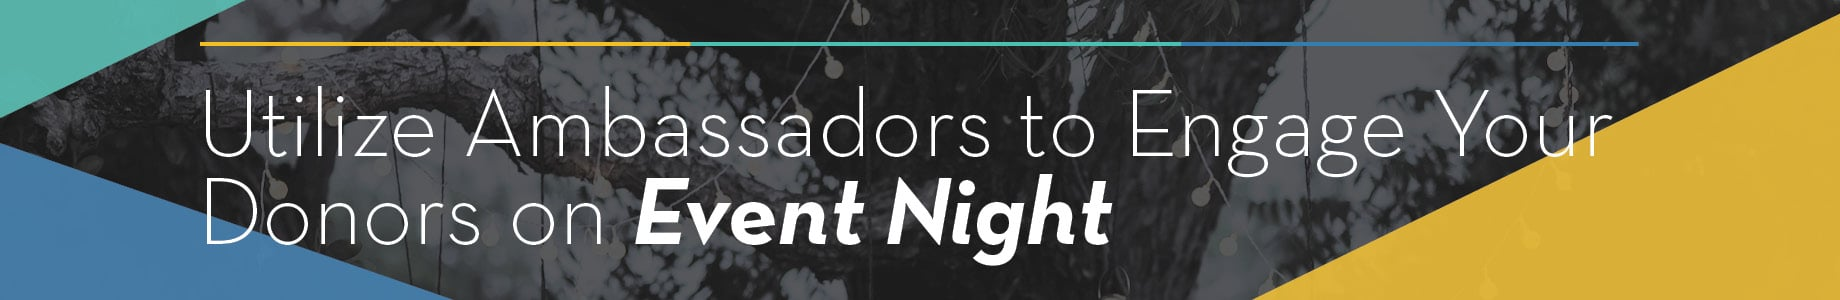 Utilize Ambassadors to Engage Your Donors on Event Night